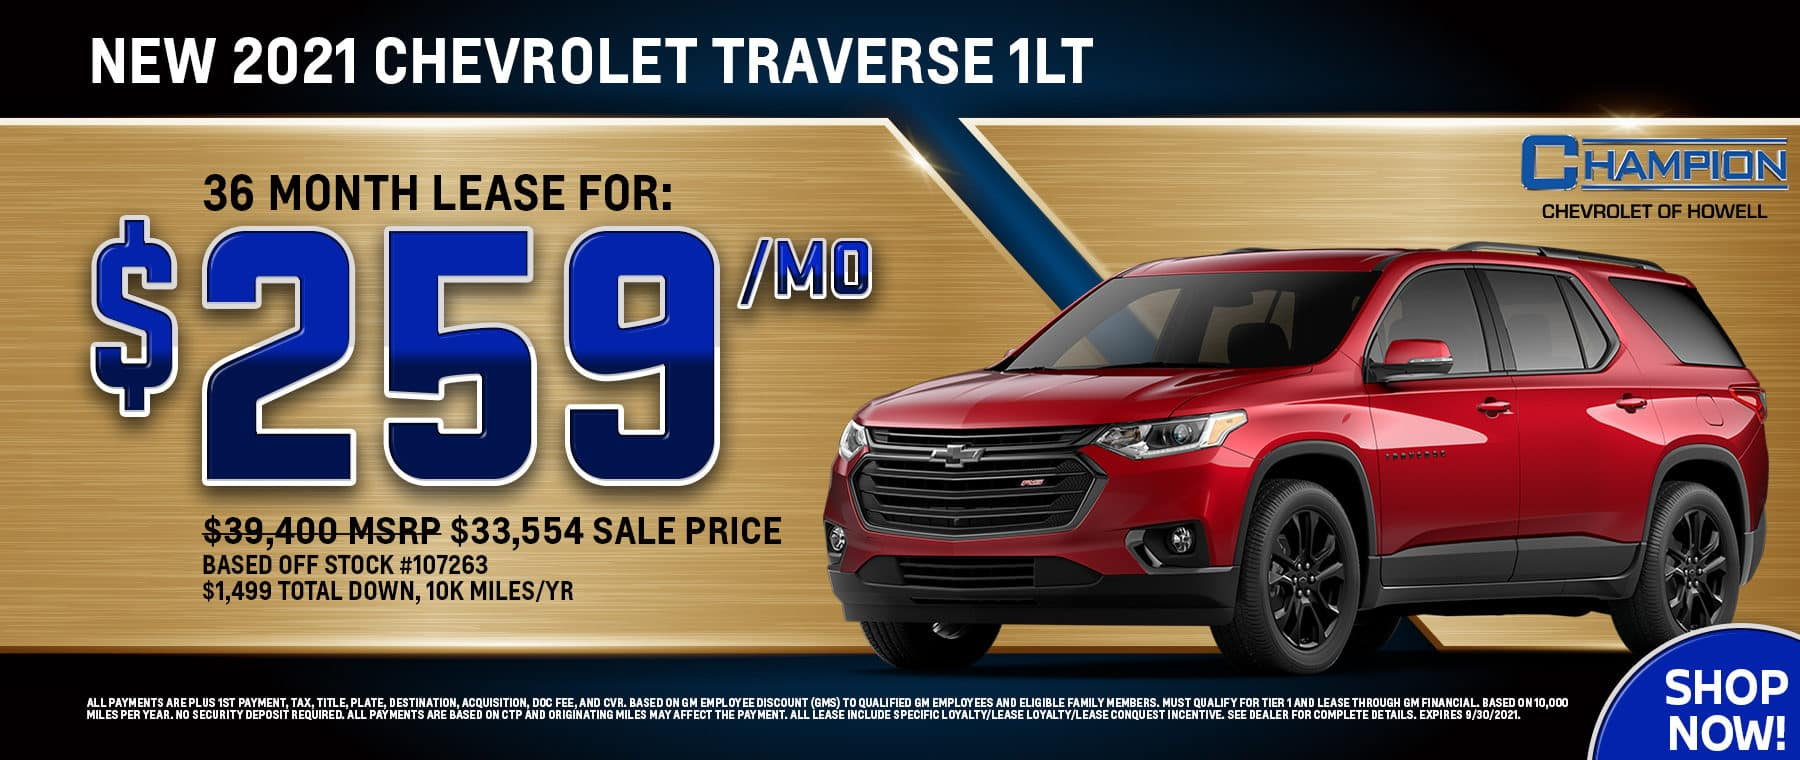 9_21_Champion_Howell_Chevy_1800x760_2021_Traverse_1LT_web_banner